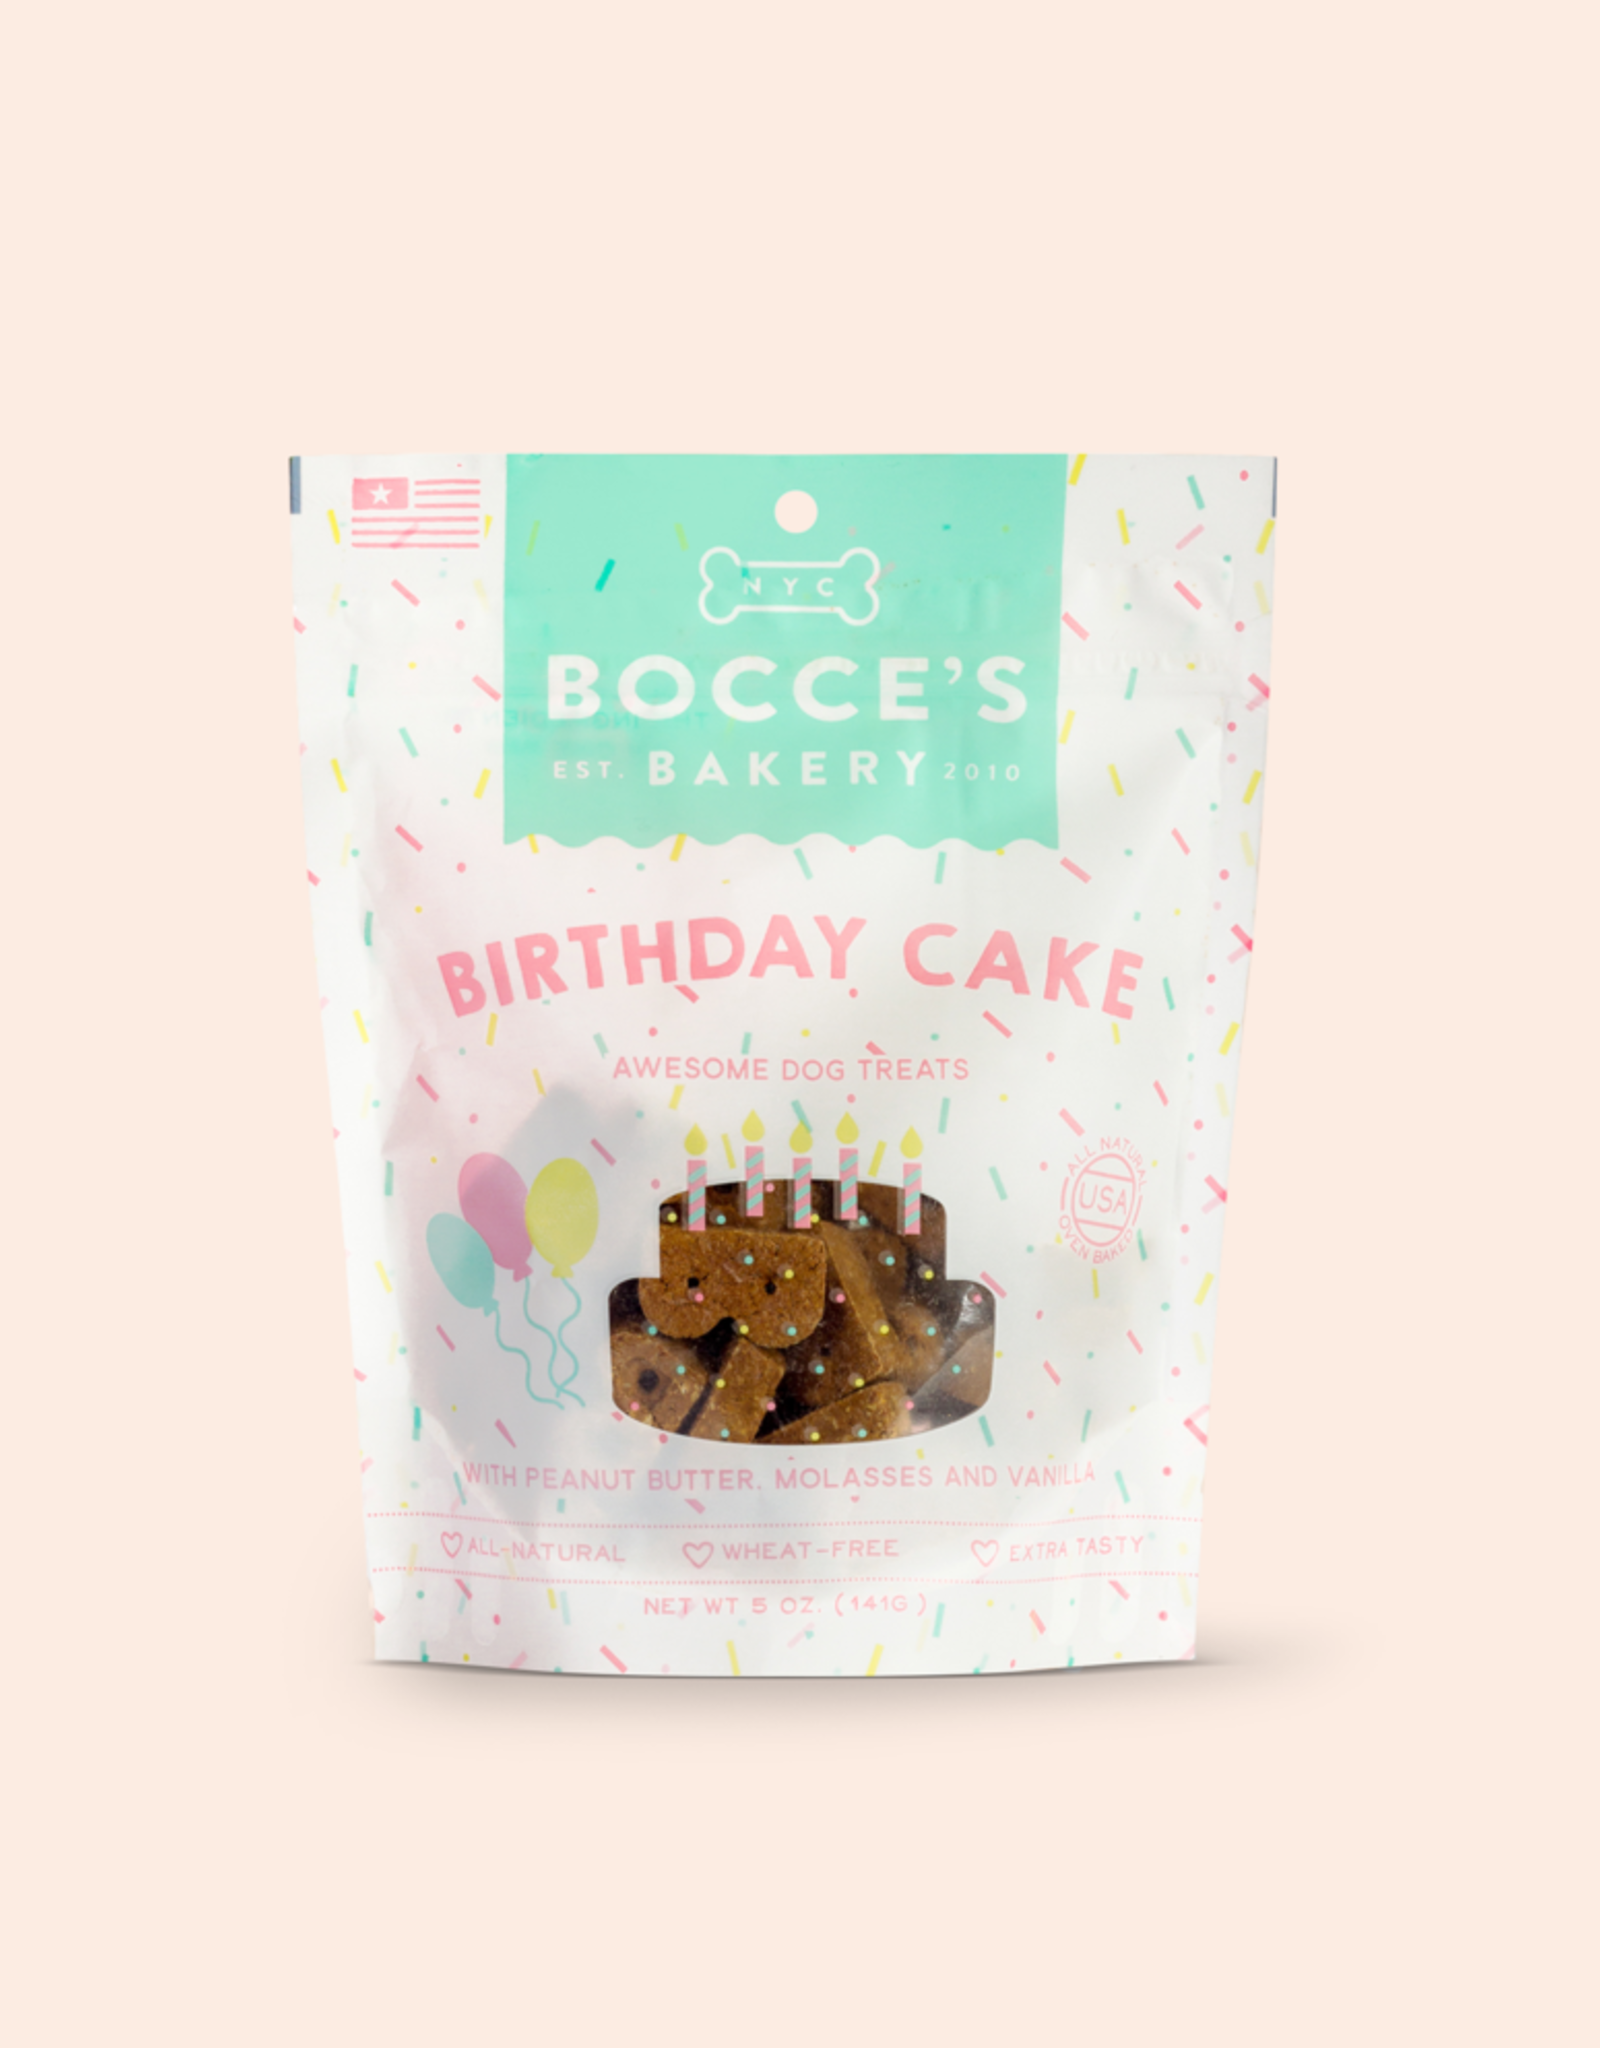 Bocce's Bakery Birthday Cake 5oz